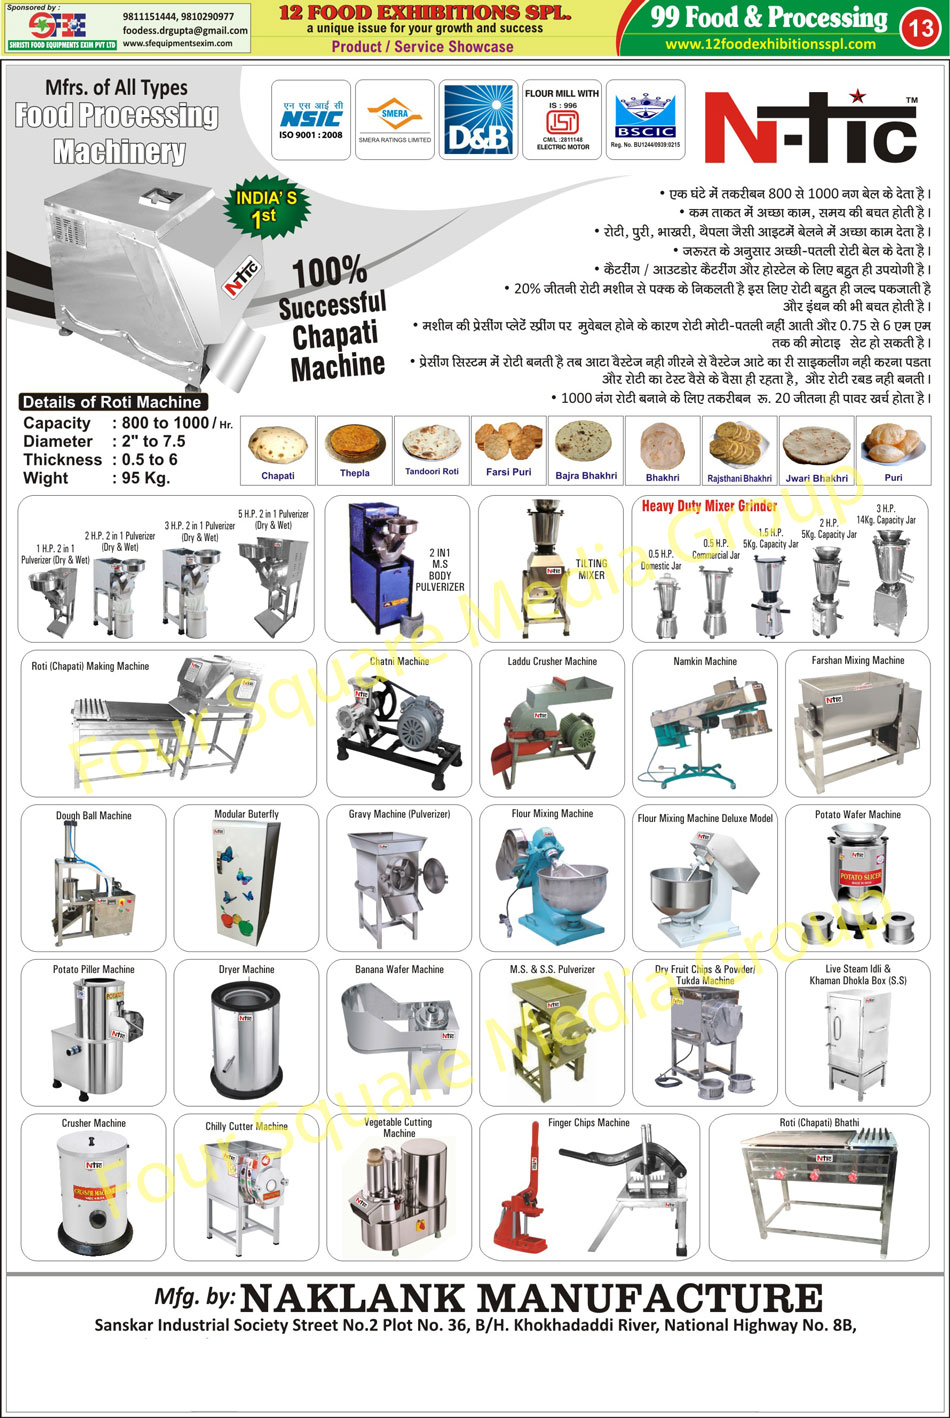 Food Processing Machines, Mixer Grinders, Chapati Machines, Roti Machines, Domestic Flour Mills, Two In One Pulverizer For Food, Gravy Machines, Flour Mixing Machines, Farshan Machines, Vegetable Cutting Machines, Masala Mixing Machines, Spice Mixing Machines, Potato Peeling Machines, Onion Cutting Machines, Potato Wafer Machines, Steam Idli Machines, Dryer Machines for Food, Chatni Machines, Laddu Crusher Machines, Namkeen Machines, Dough Ball Machines, Hand Press Roti Making Machines, Hand Press Chapati Making Machines, Banana Wafer Machines, SS Pulverizers, Stainless Steel Pulverizers, MS Pulverizers, Dry Fruit Chips Machines, Dry Fruit Powder Machines, Dry Fruit Tukda Machines, Stainless Steel Khaman Dhokla Boxes, Crusher Machine For Food, Chilly Cutter Machines, Chilli Cutter Machines, Finger Chips Machines, Roti Bhathi, Chapati Bhathi, Chapati Making Machines, Roti Making Machines, Tilting Mixer, Potato Peeler Machines